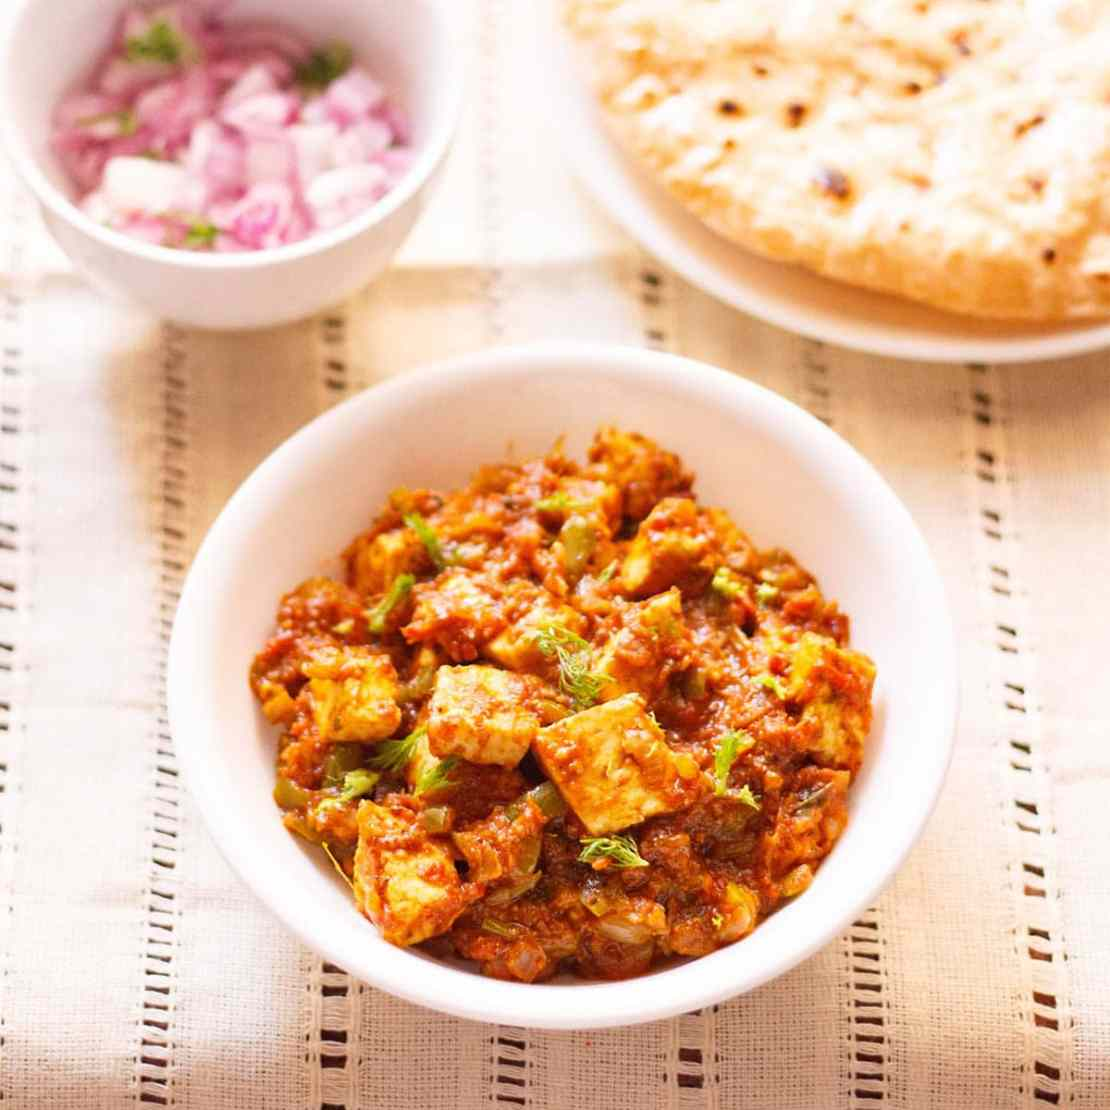 paneer tawa masala with coriander leaves garnish in a white bowl on a cream linen with a side plate of roti and a small side bowl of chopped red onions and coriander